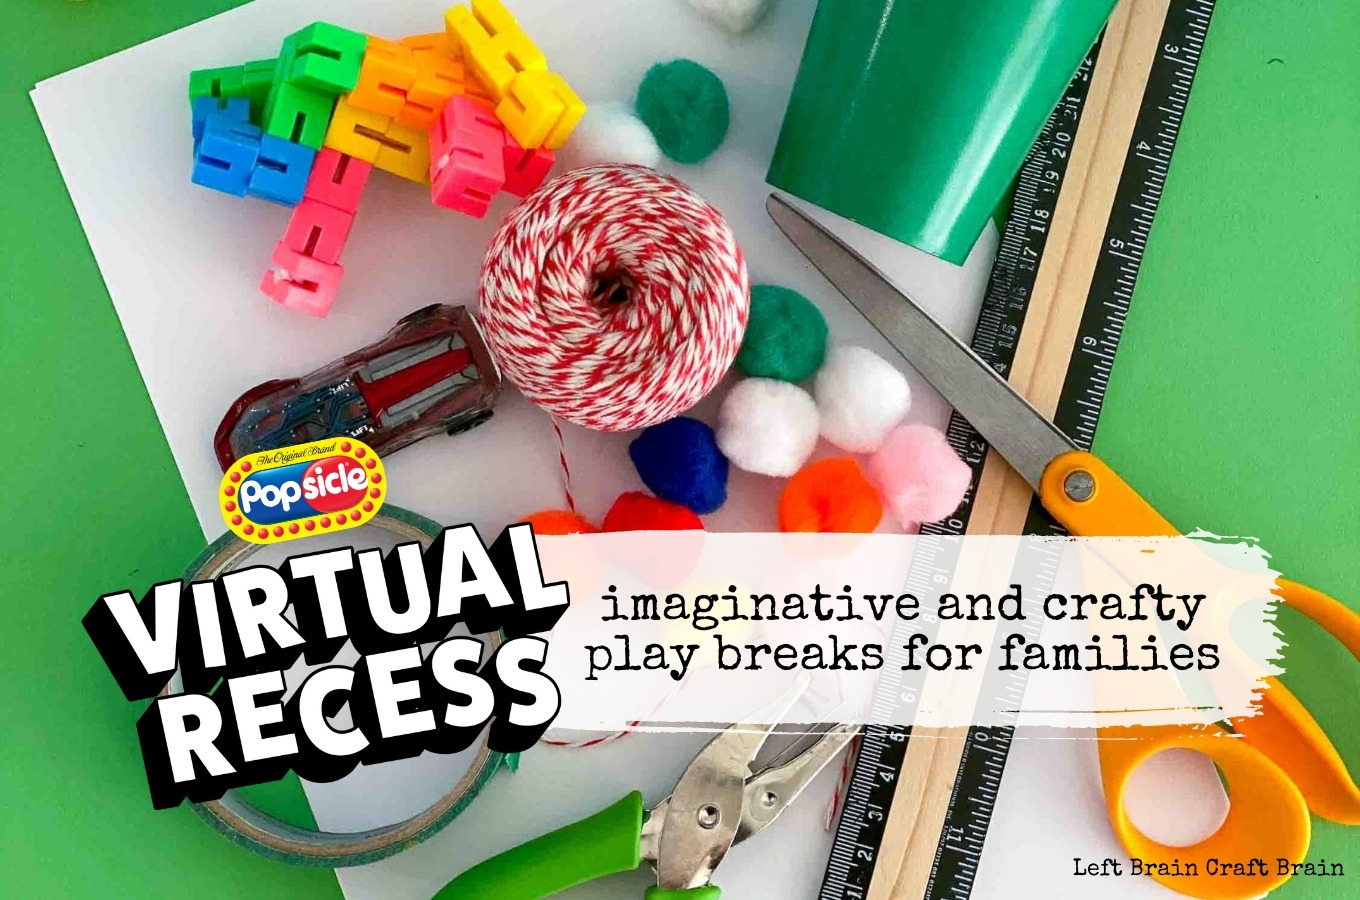 Popsicle Virtual Recess craft supplies on green